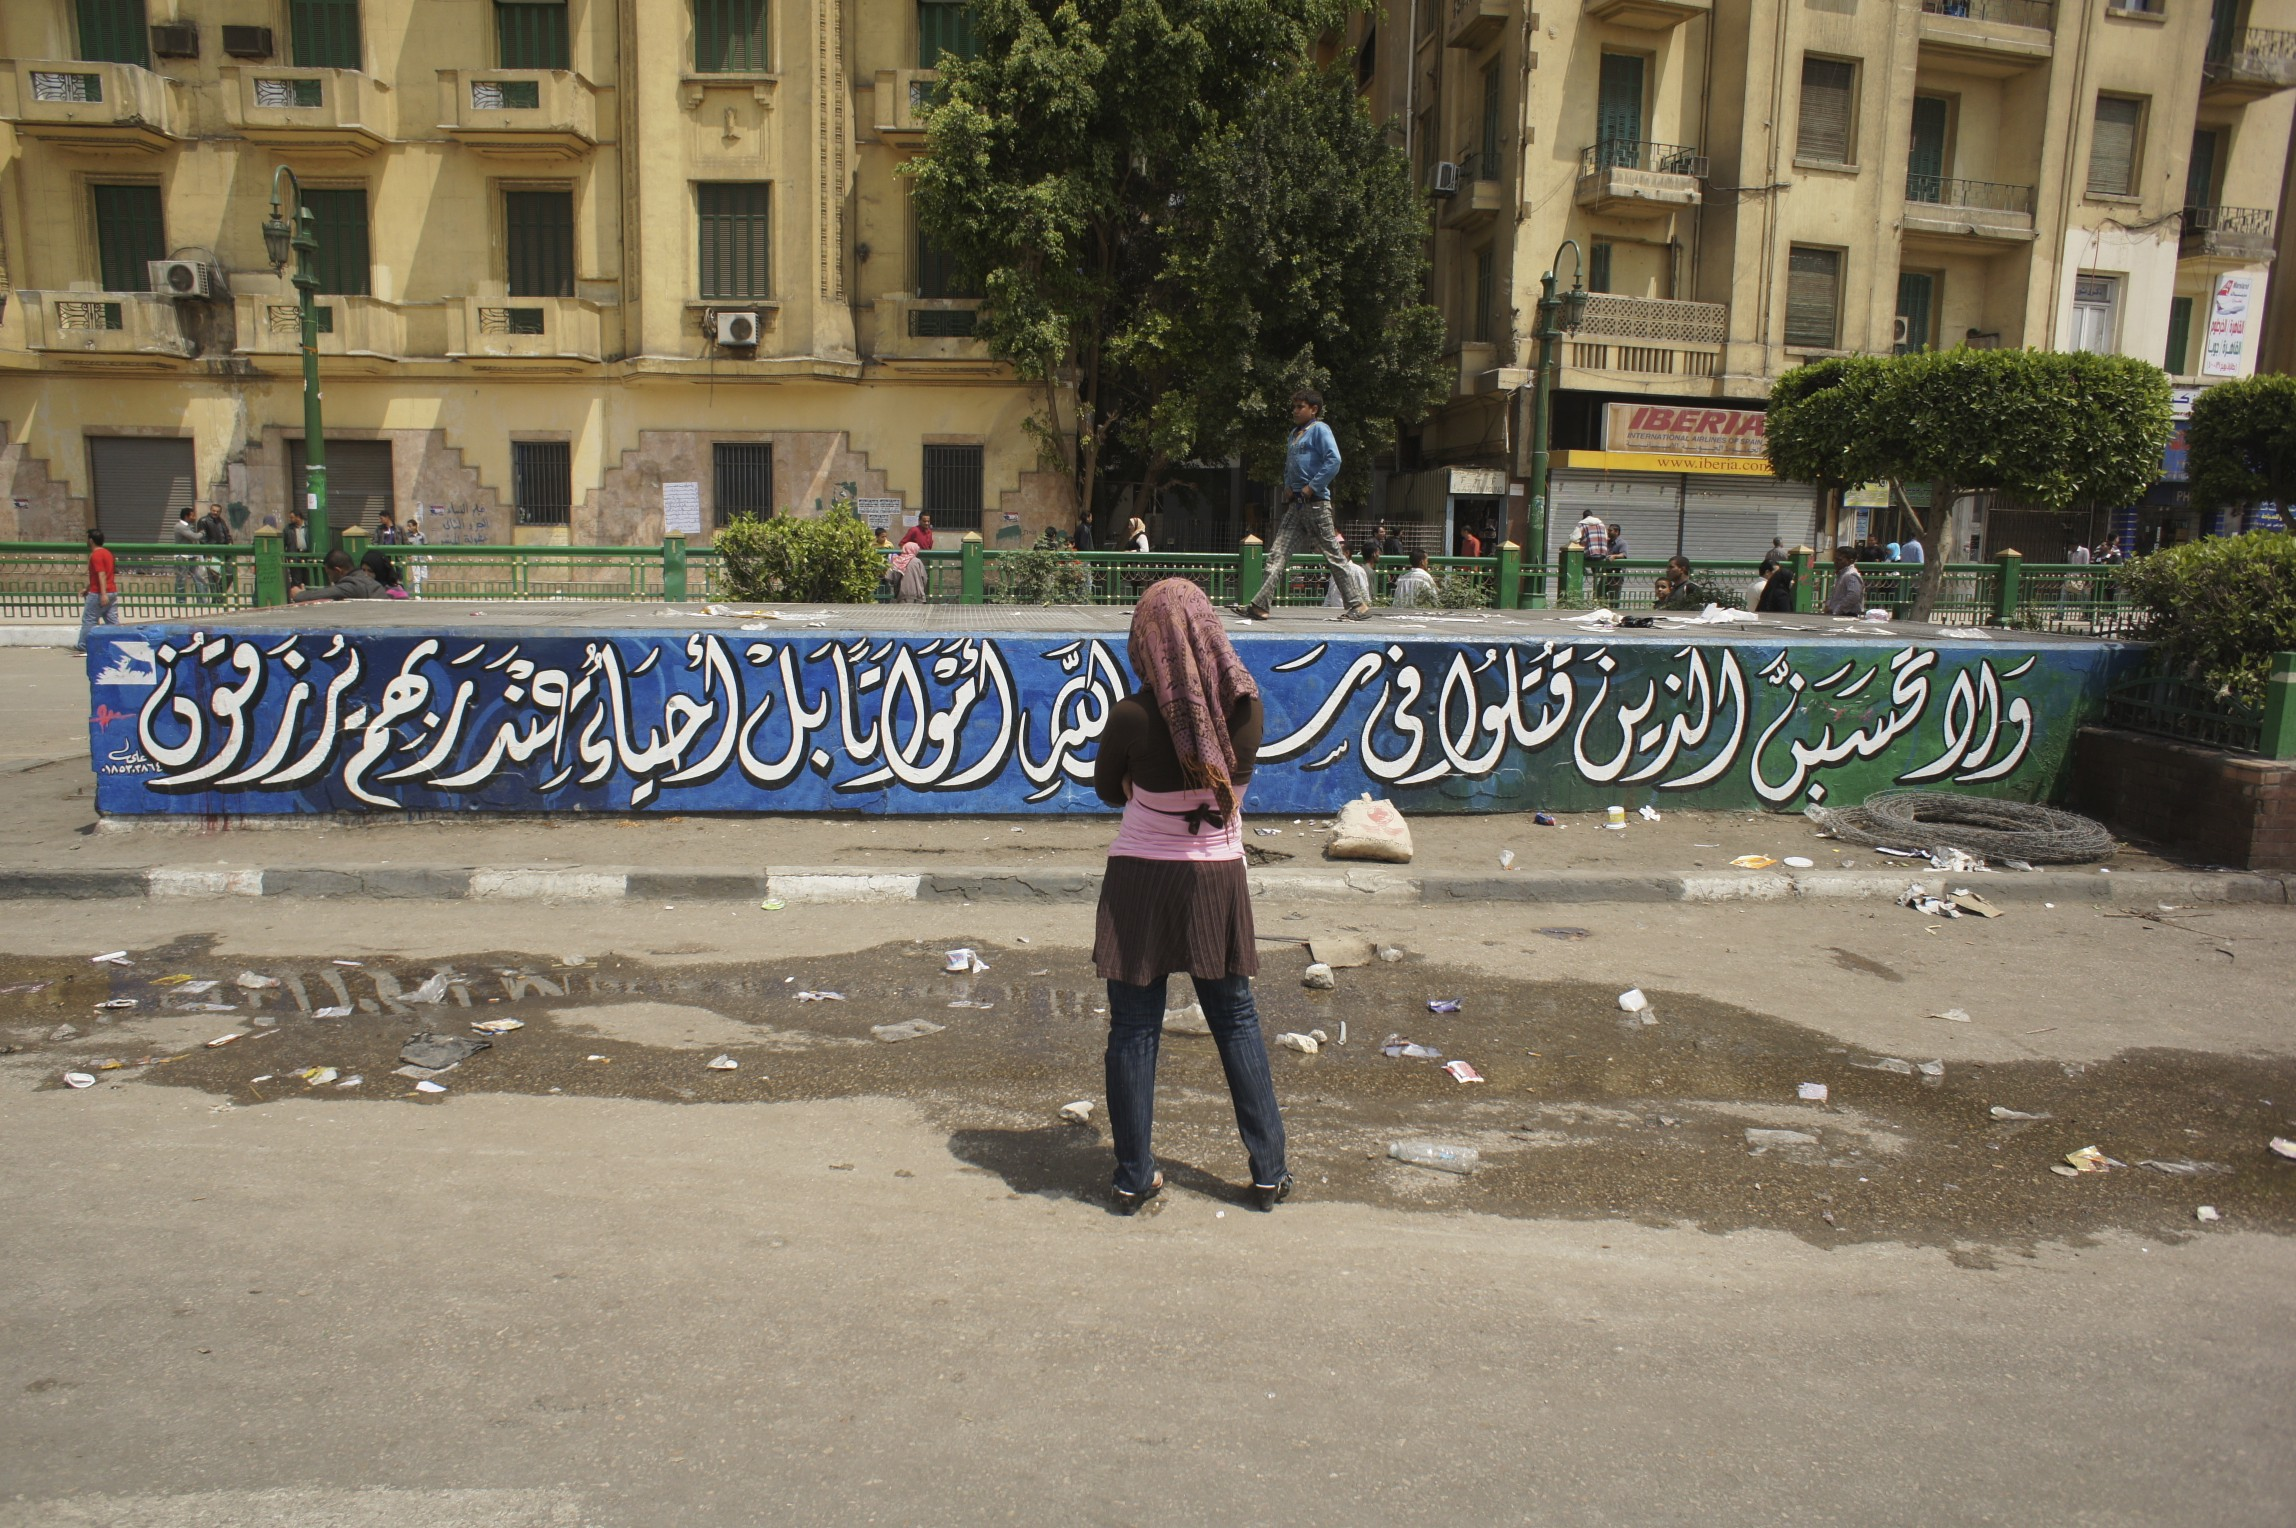 A woman looks at a graffiti of a quote from the Quran, Tahrir Square, November 2011. Photo by Issandr El Amrani.